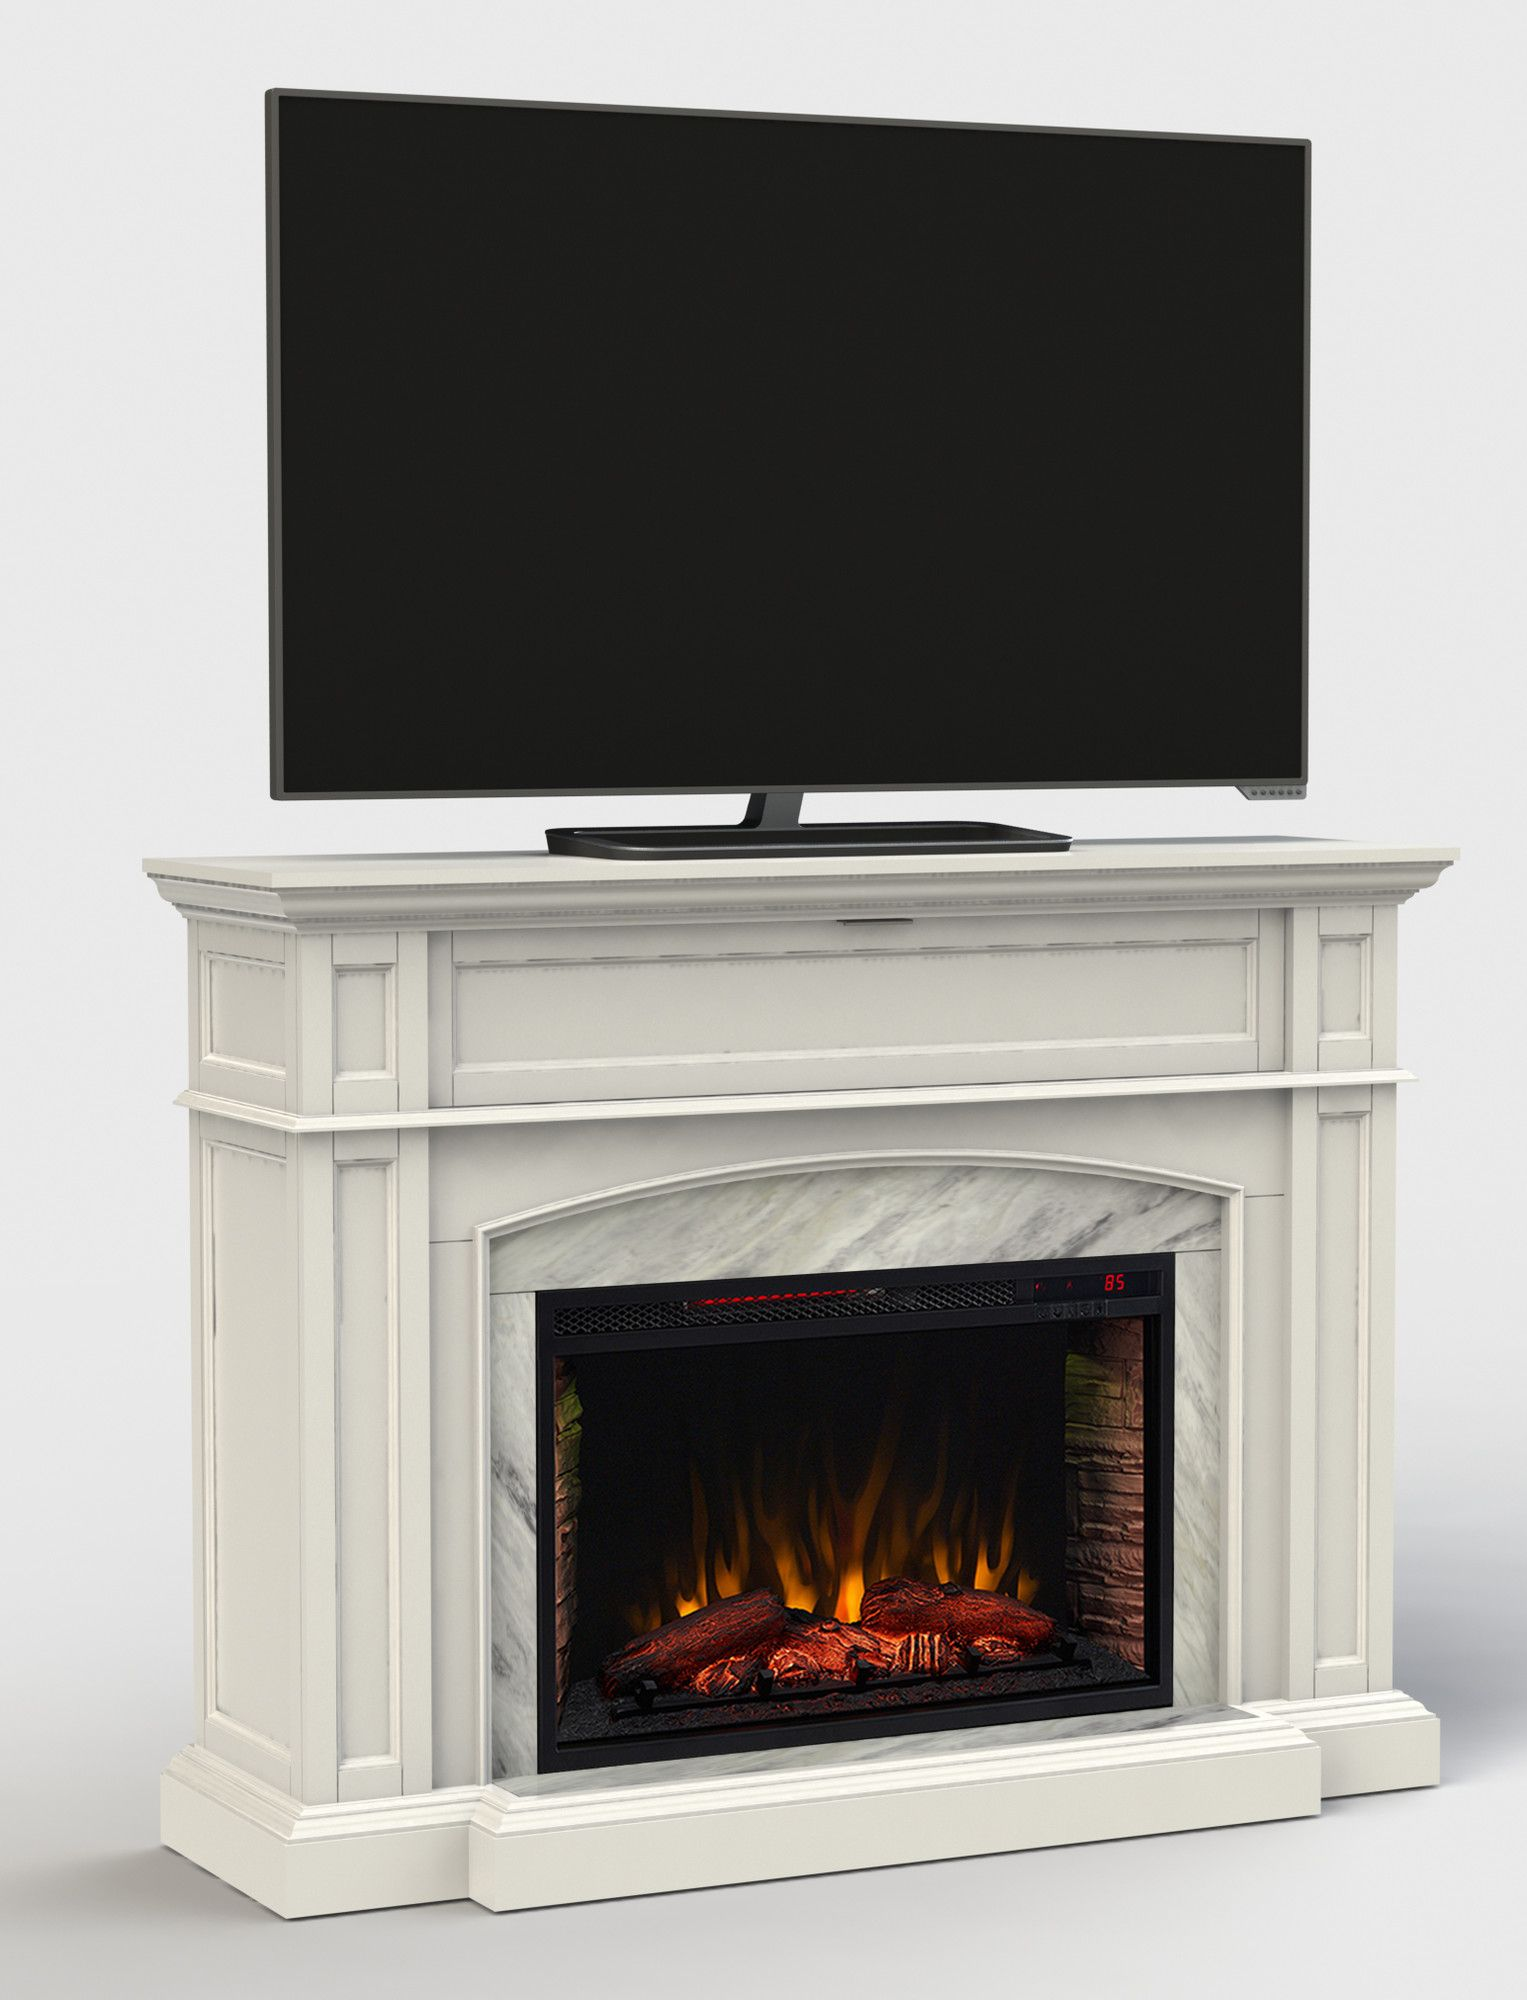 Wayfair Fireplace Screen Unique Tv Stand with Electric Fireplace